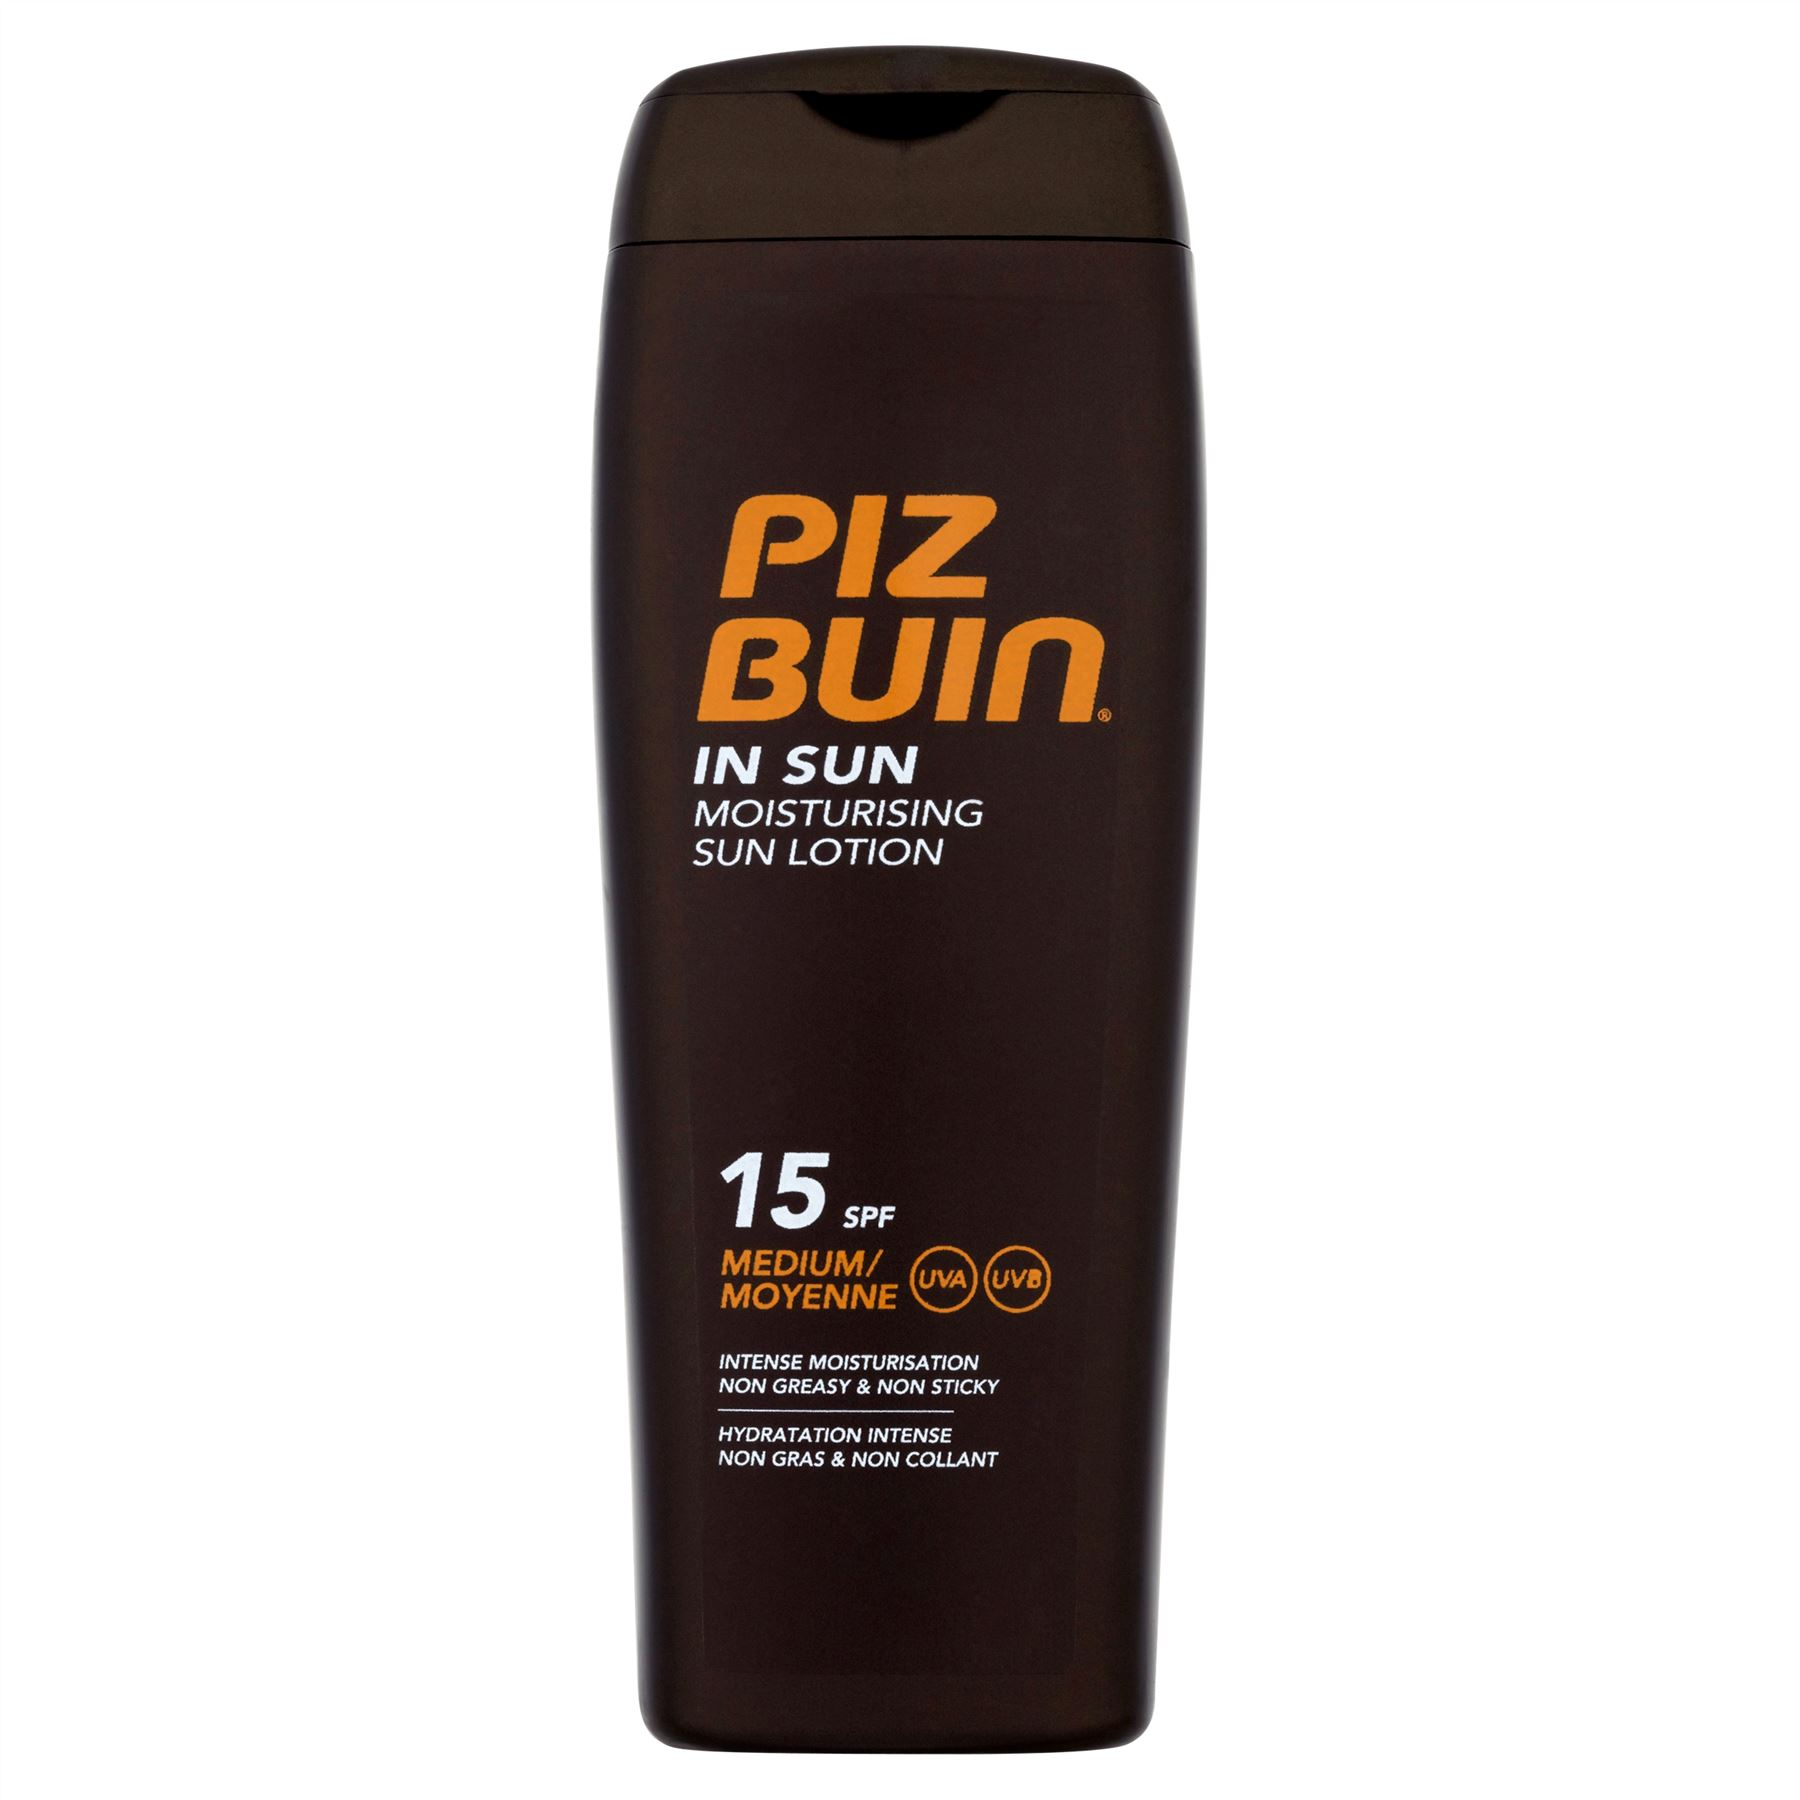 PIZ BUIN IN SUN MOISTURE LOTION SPF 15 200 ML